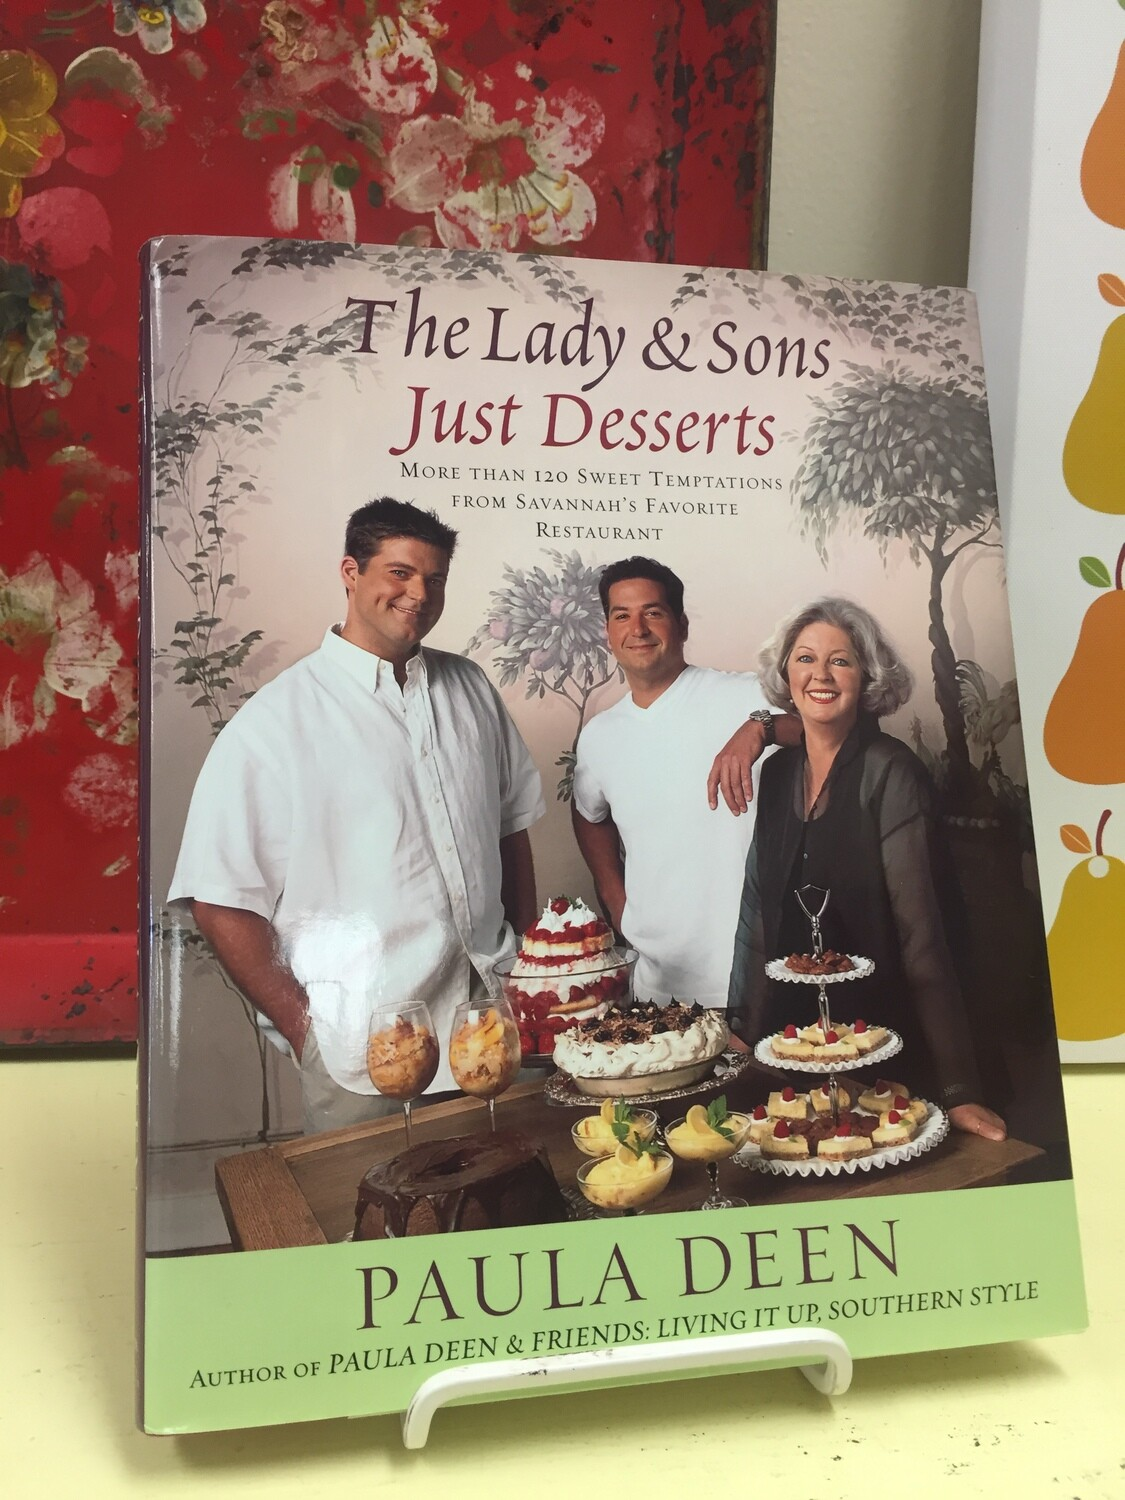 The Lady and Sons Just Desserts